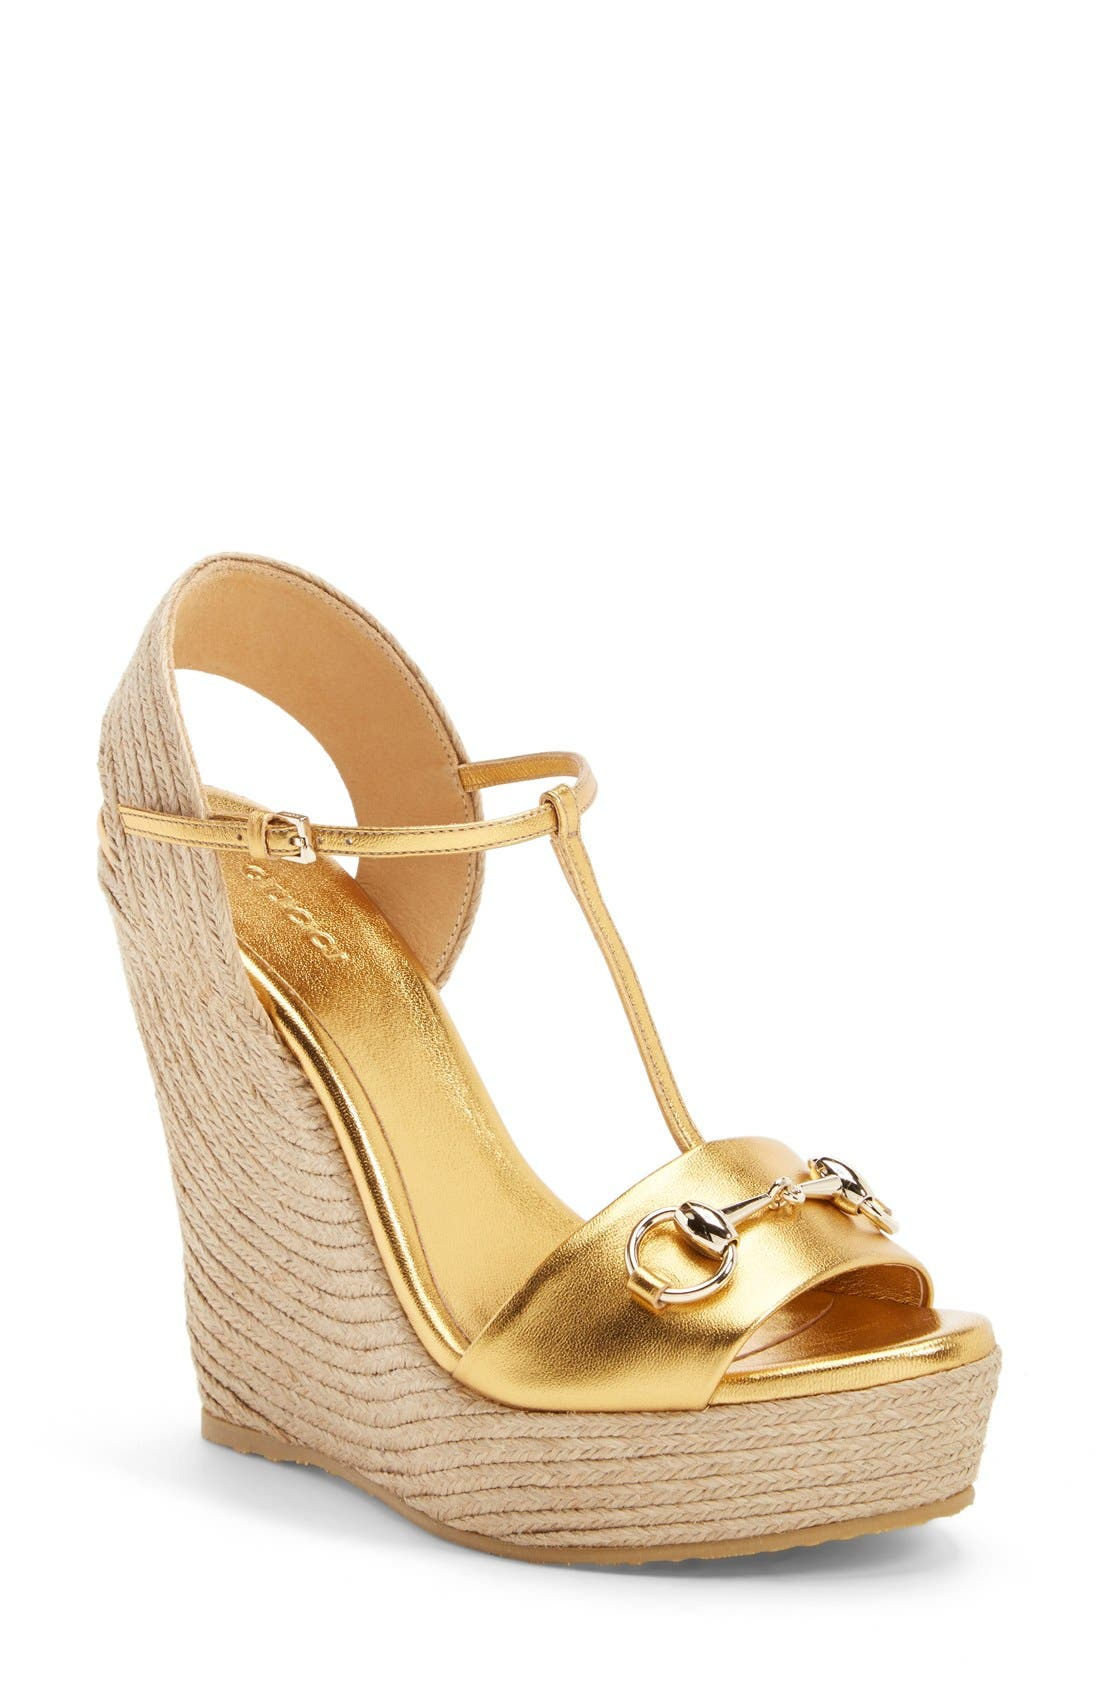 Alternate Image 1 Selected - Gucci 'Rafia' T-Strap Wedge Sandal (Women)